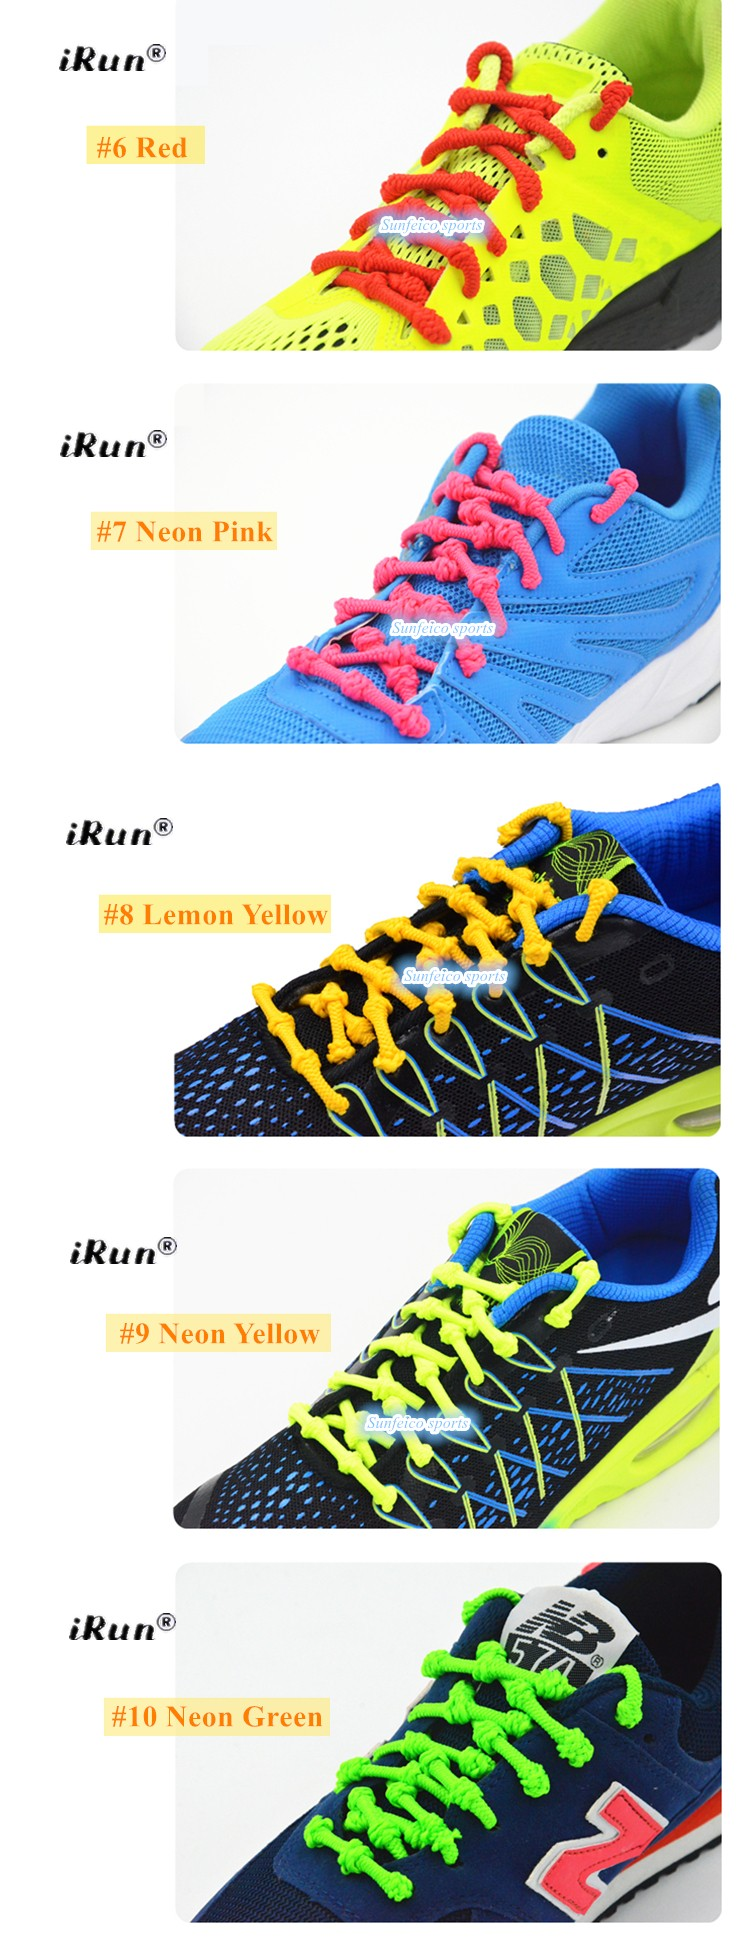 ab21b7b45e4f Never Tie Triathlon Elastic Shoelaces with Knots For Sneakers - Hot-Sale  Cord Knot No